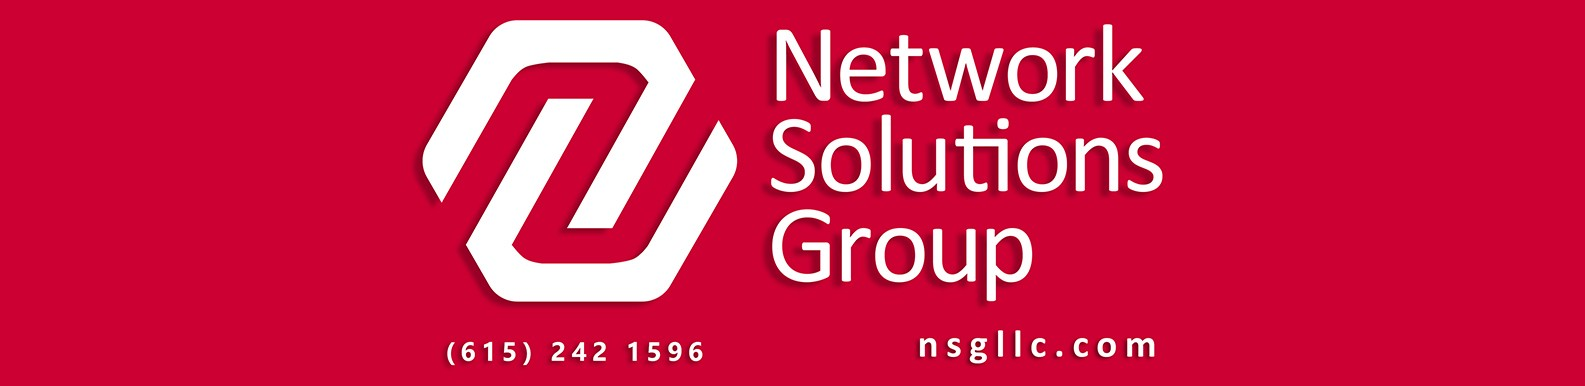 Network Solutions Group, LLC (NSG) | LinkedIn